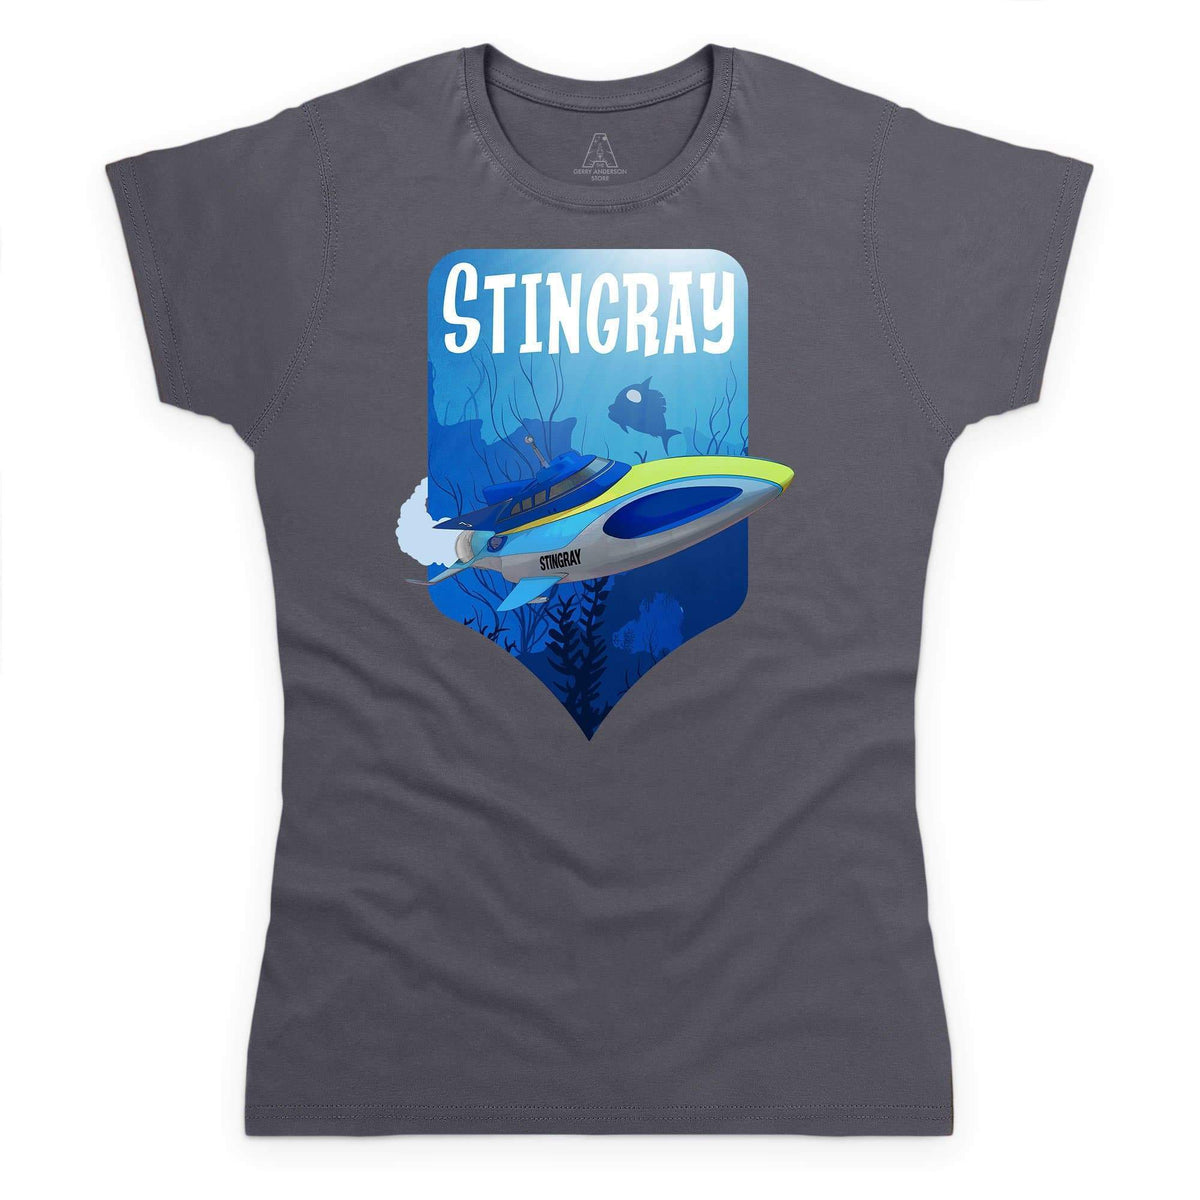 Stingray Dives Under The Sea Women's T-Shirt [Official & Exclusive] - The Gerry Anderson Store